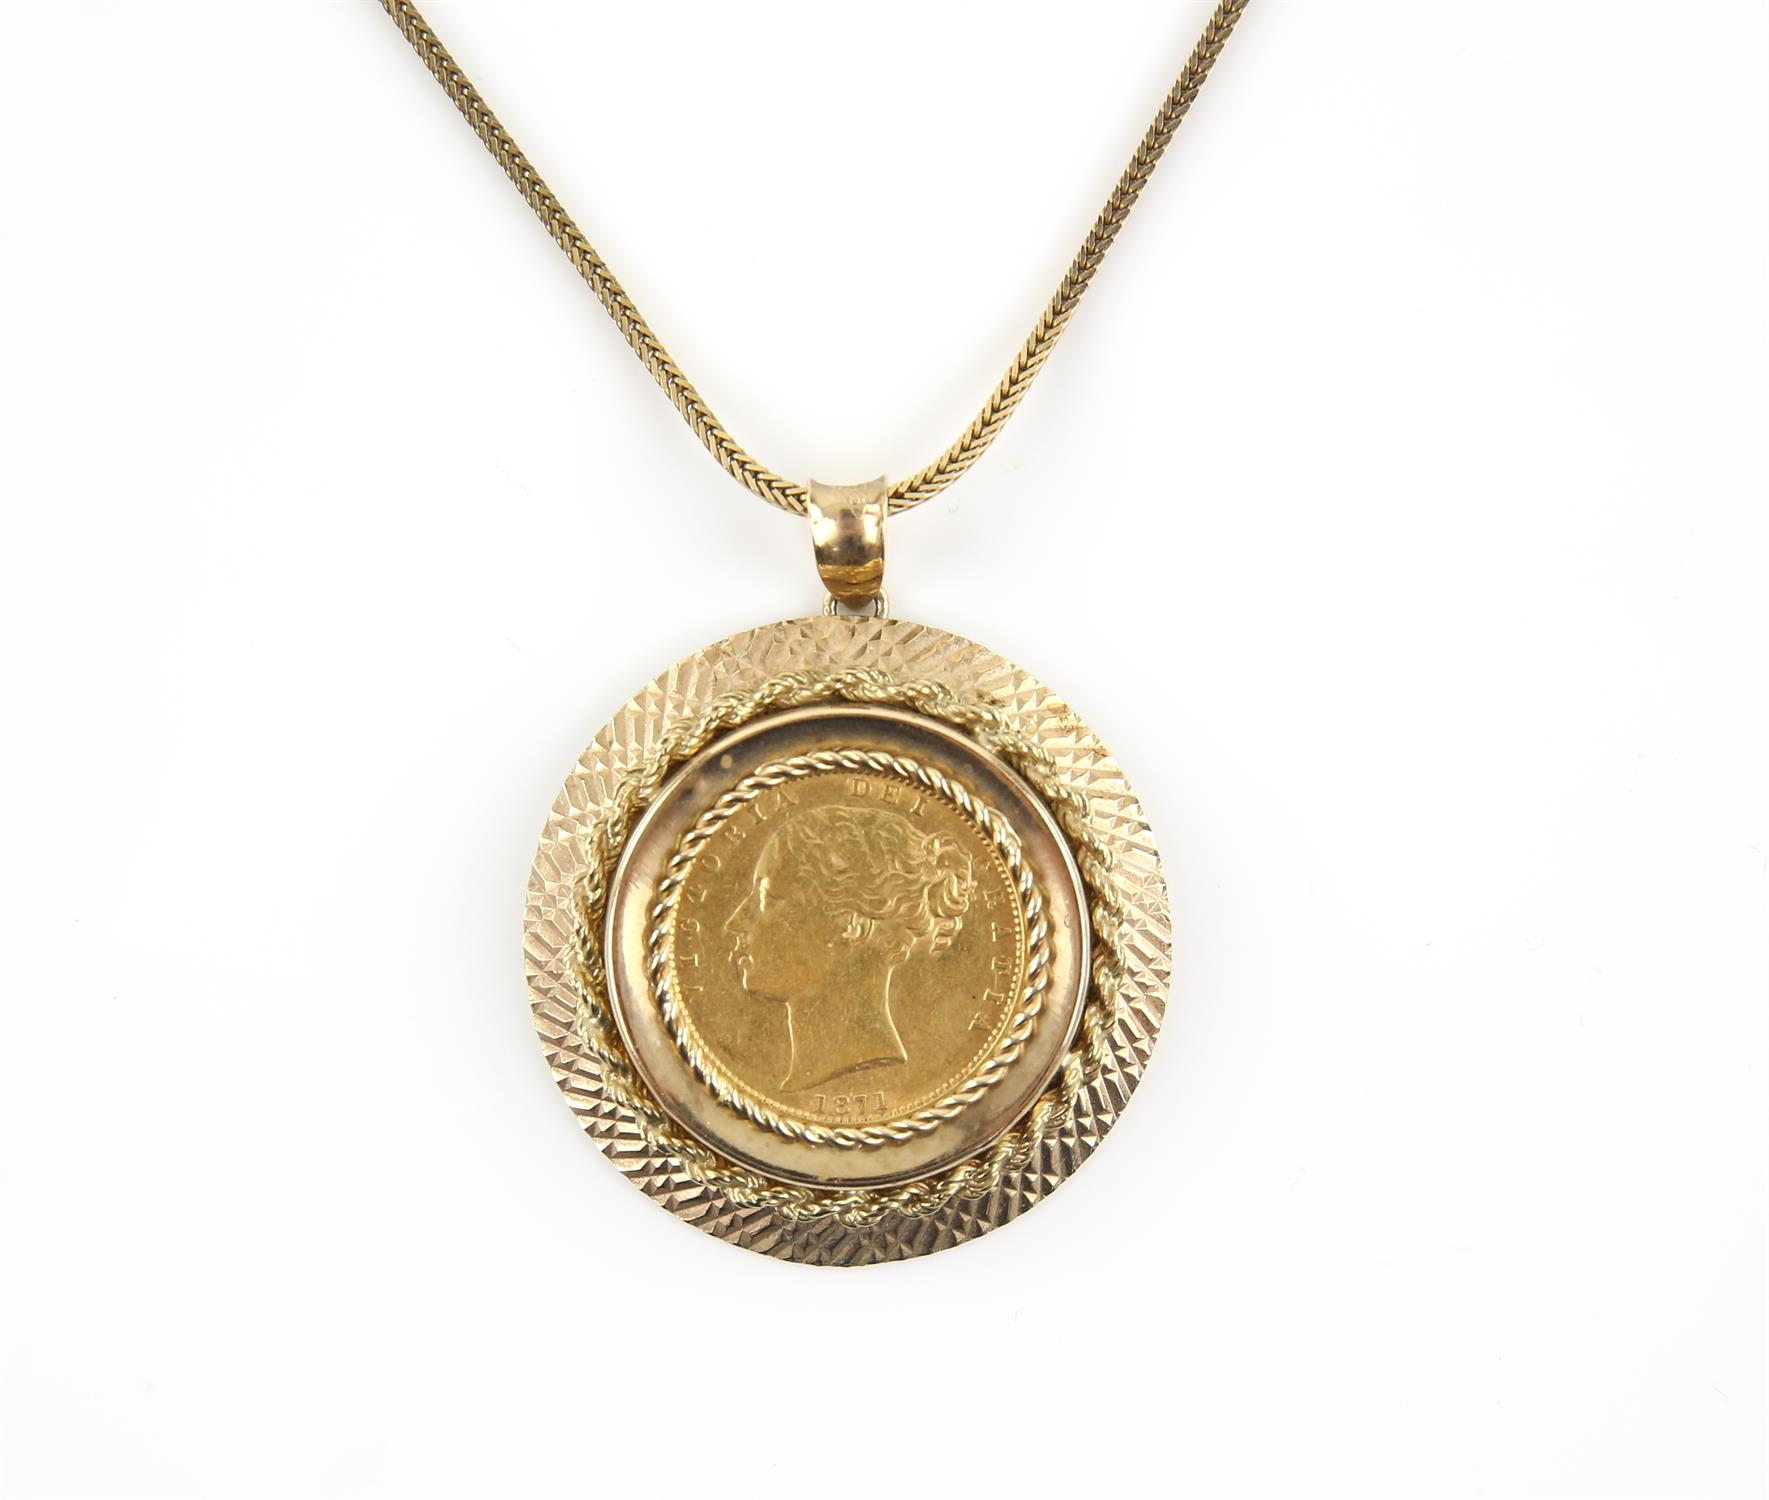 Pendant coin mount, in 9 ct set with a Victorian 1871 shield back sovereign, on a fancy link chain,